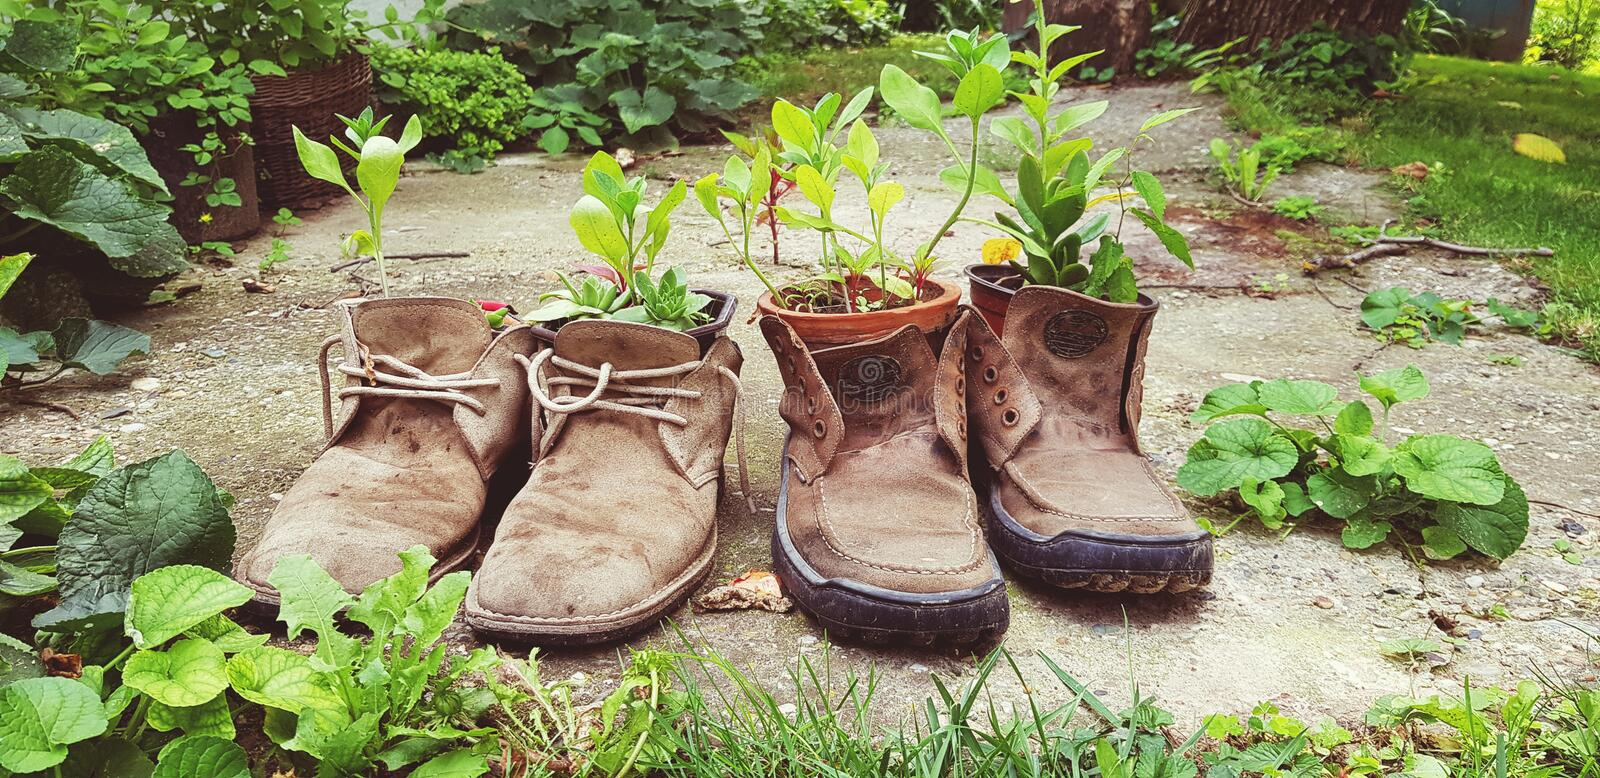 Old shoes plant decoration reuse old stuff creative concept royalty free stock image